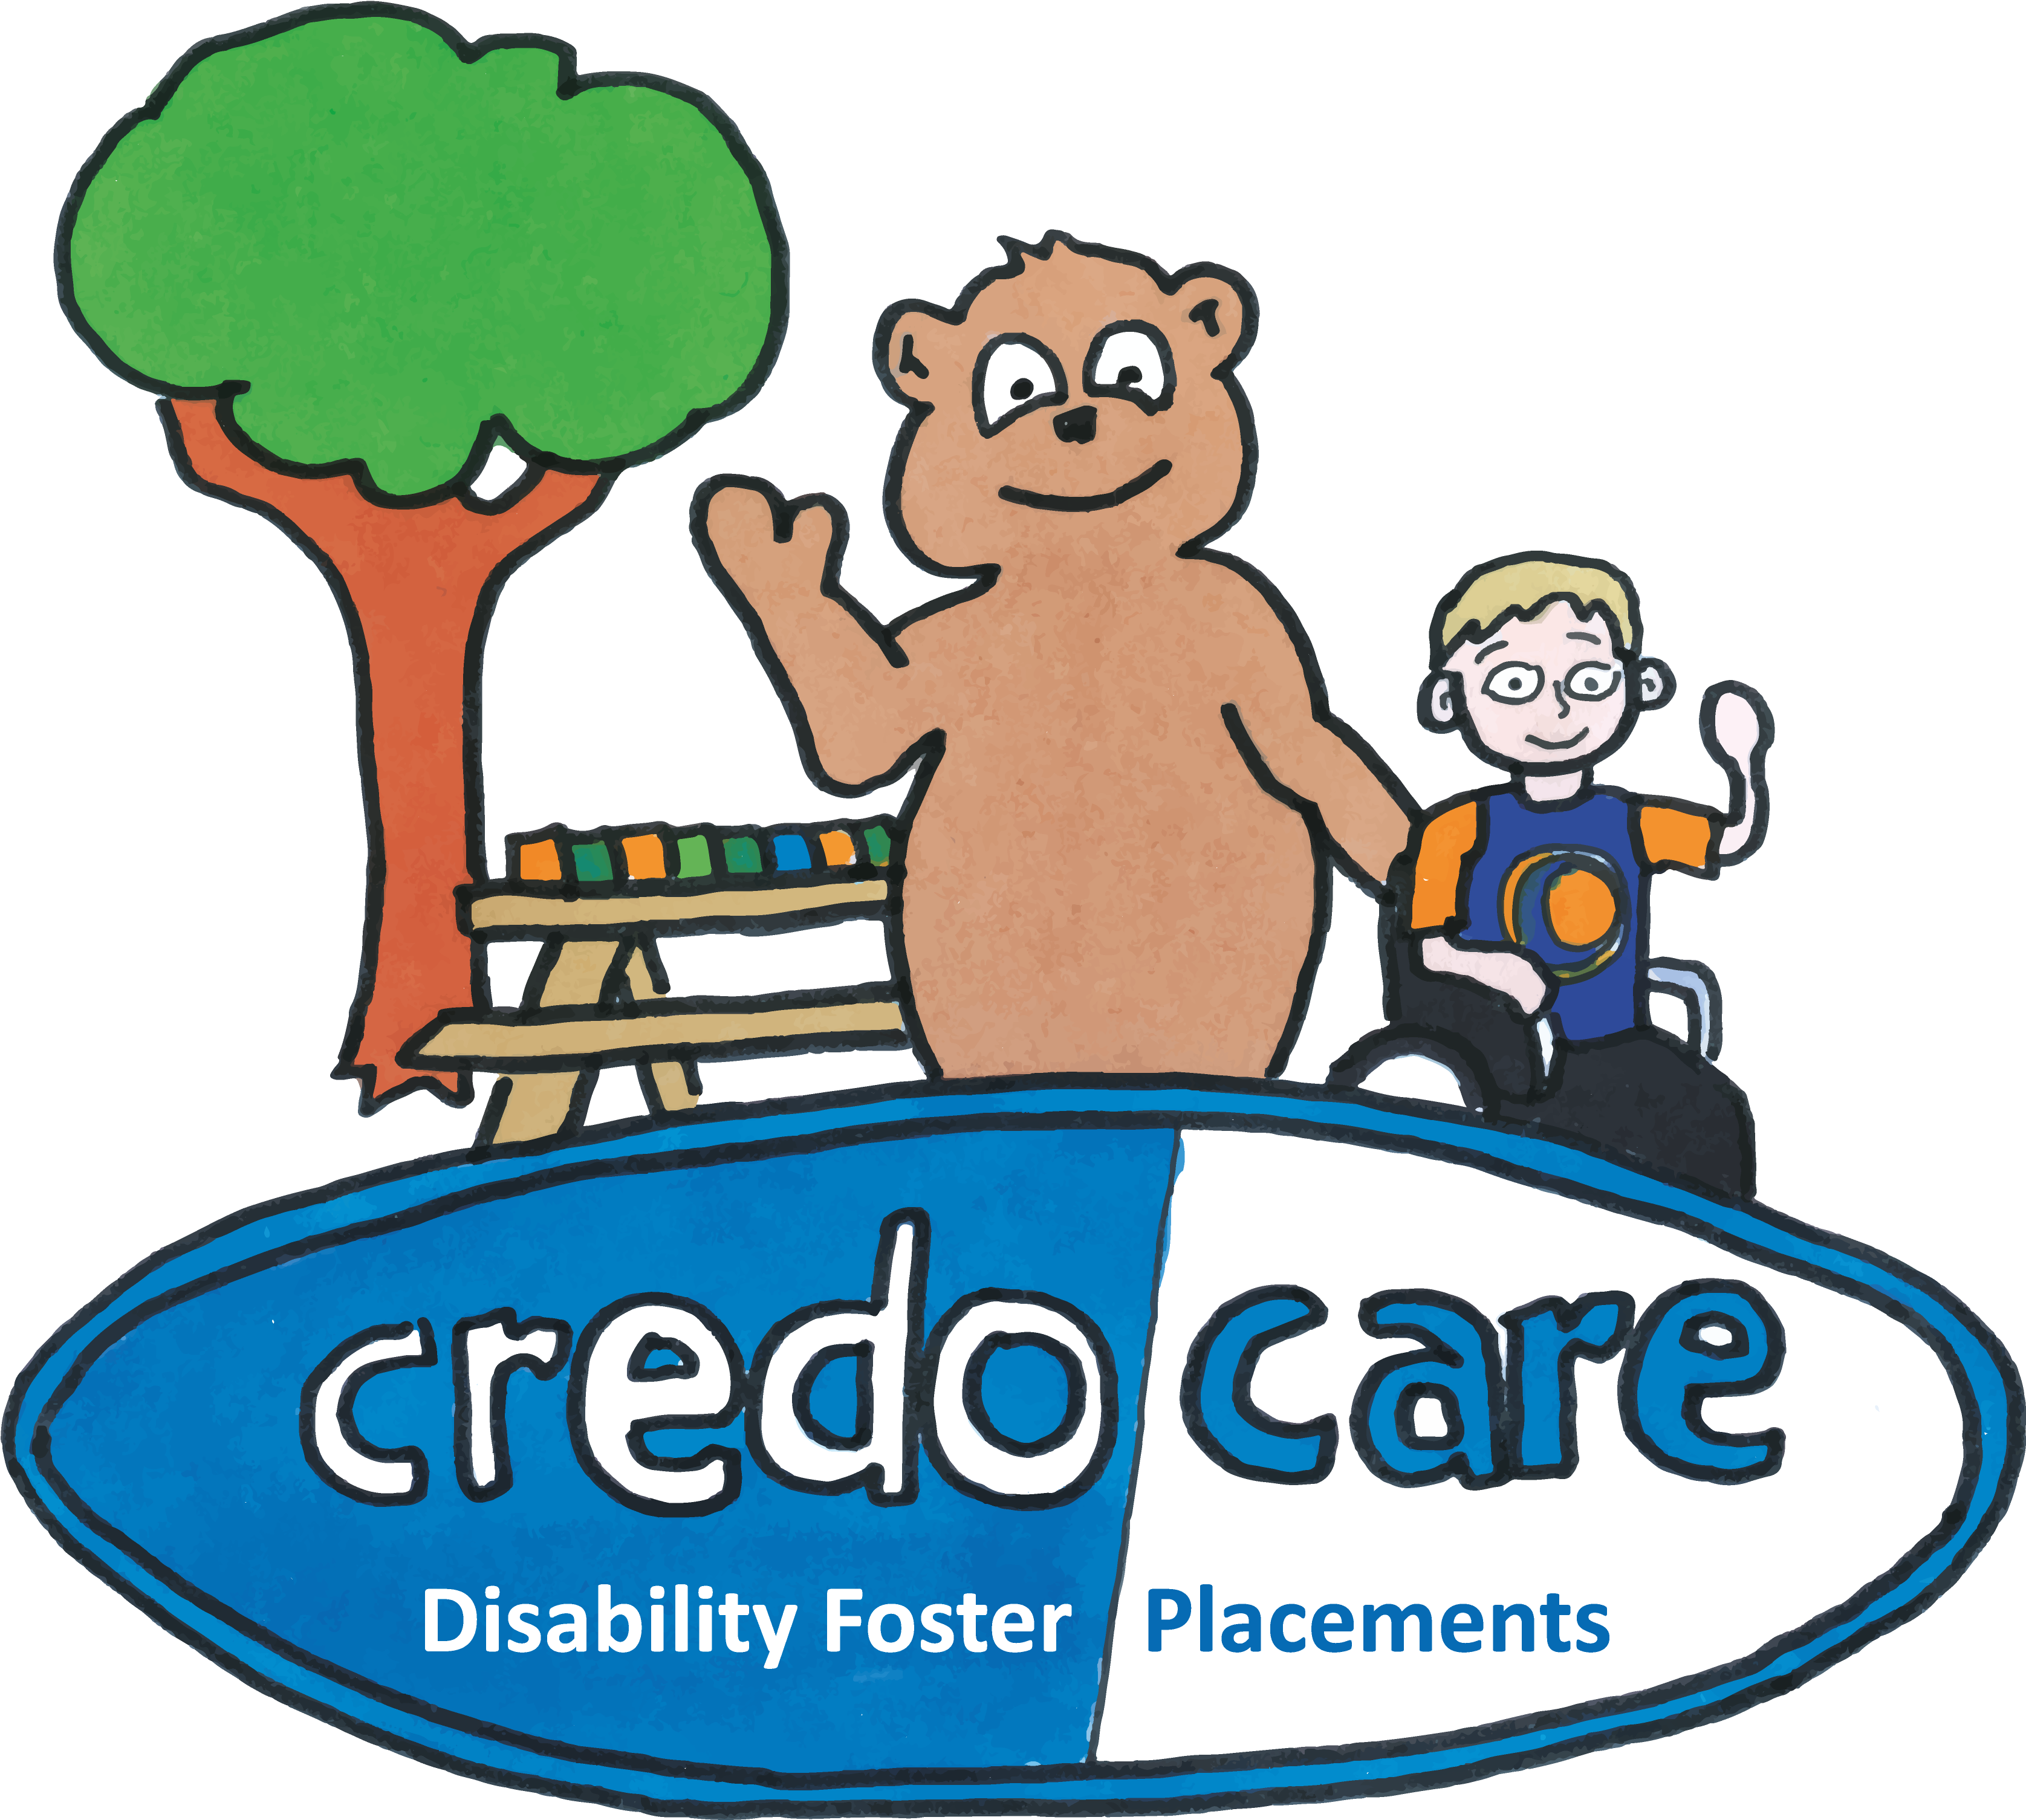 Credo Care Disability Foster Placements Are An Independent.